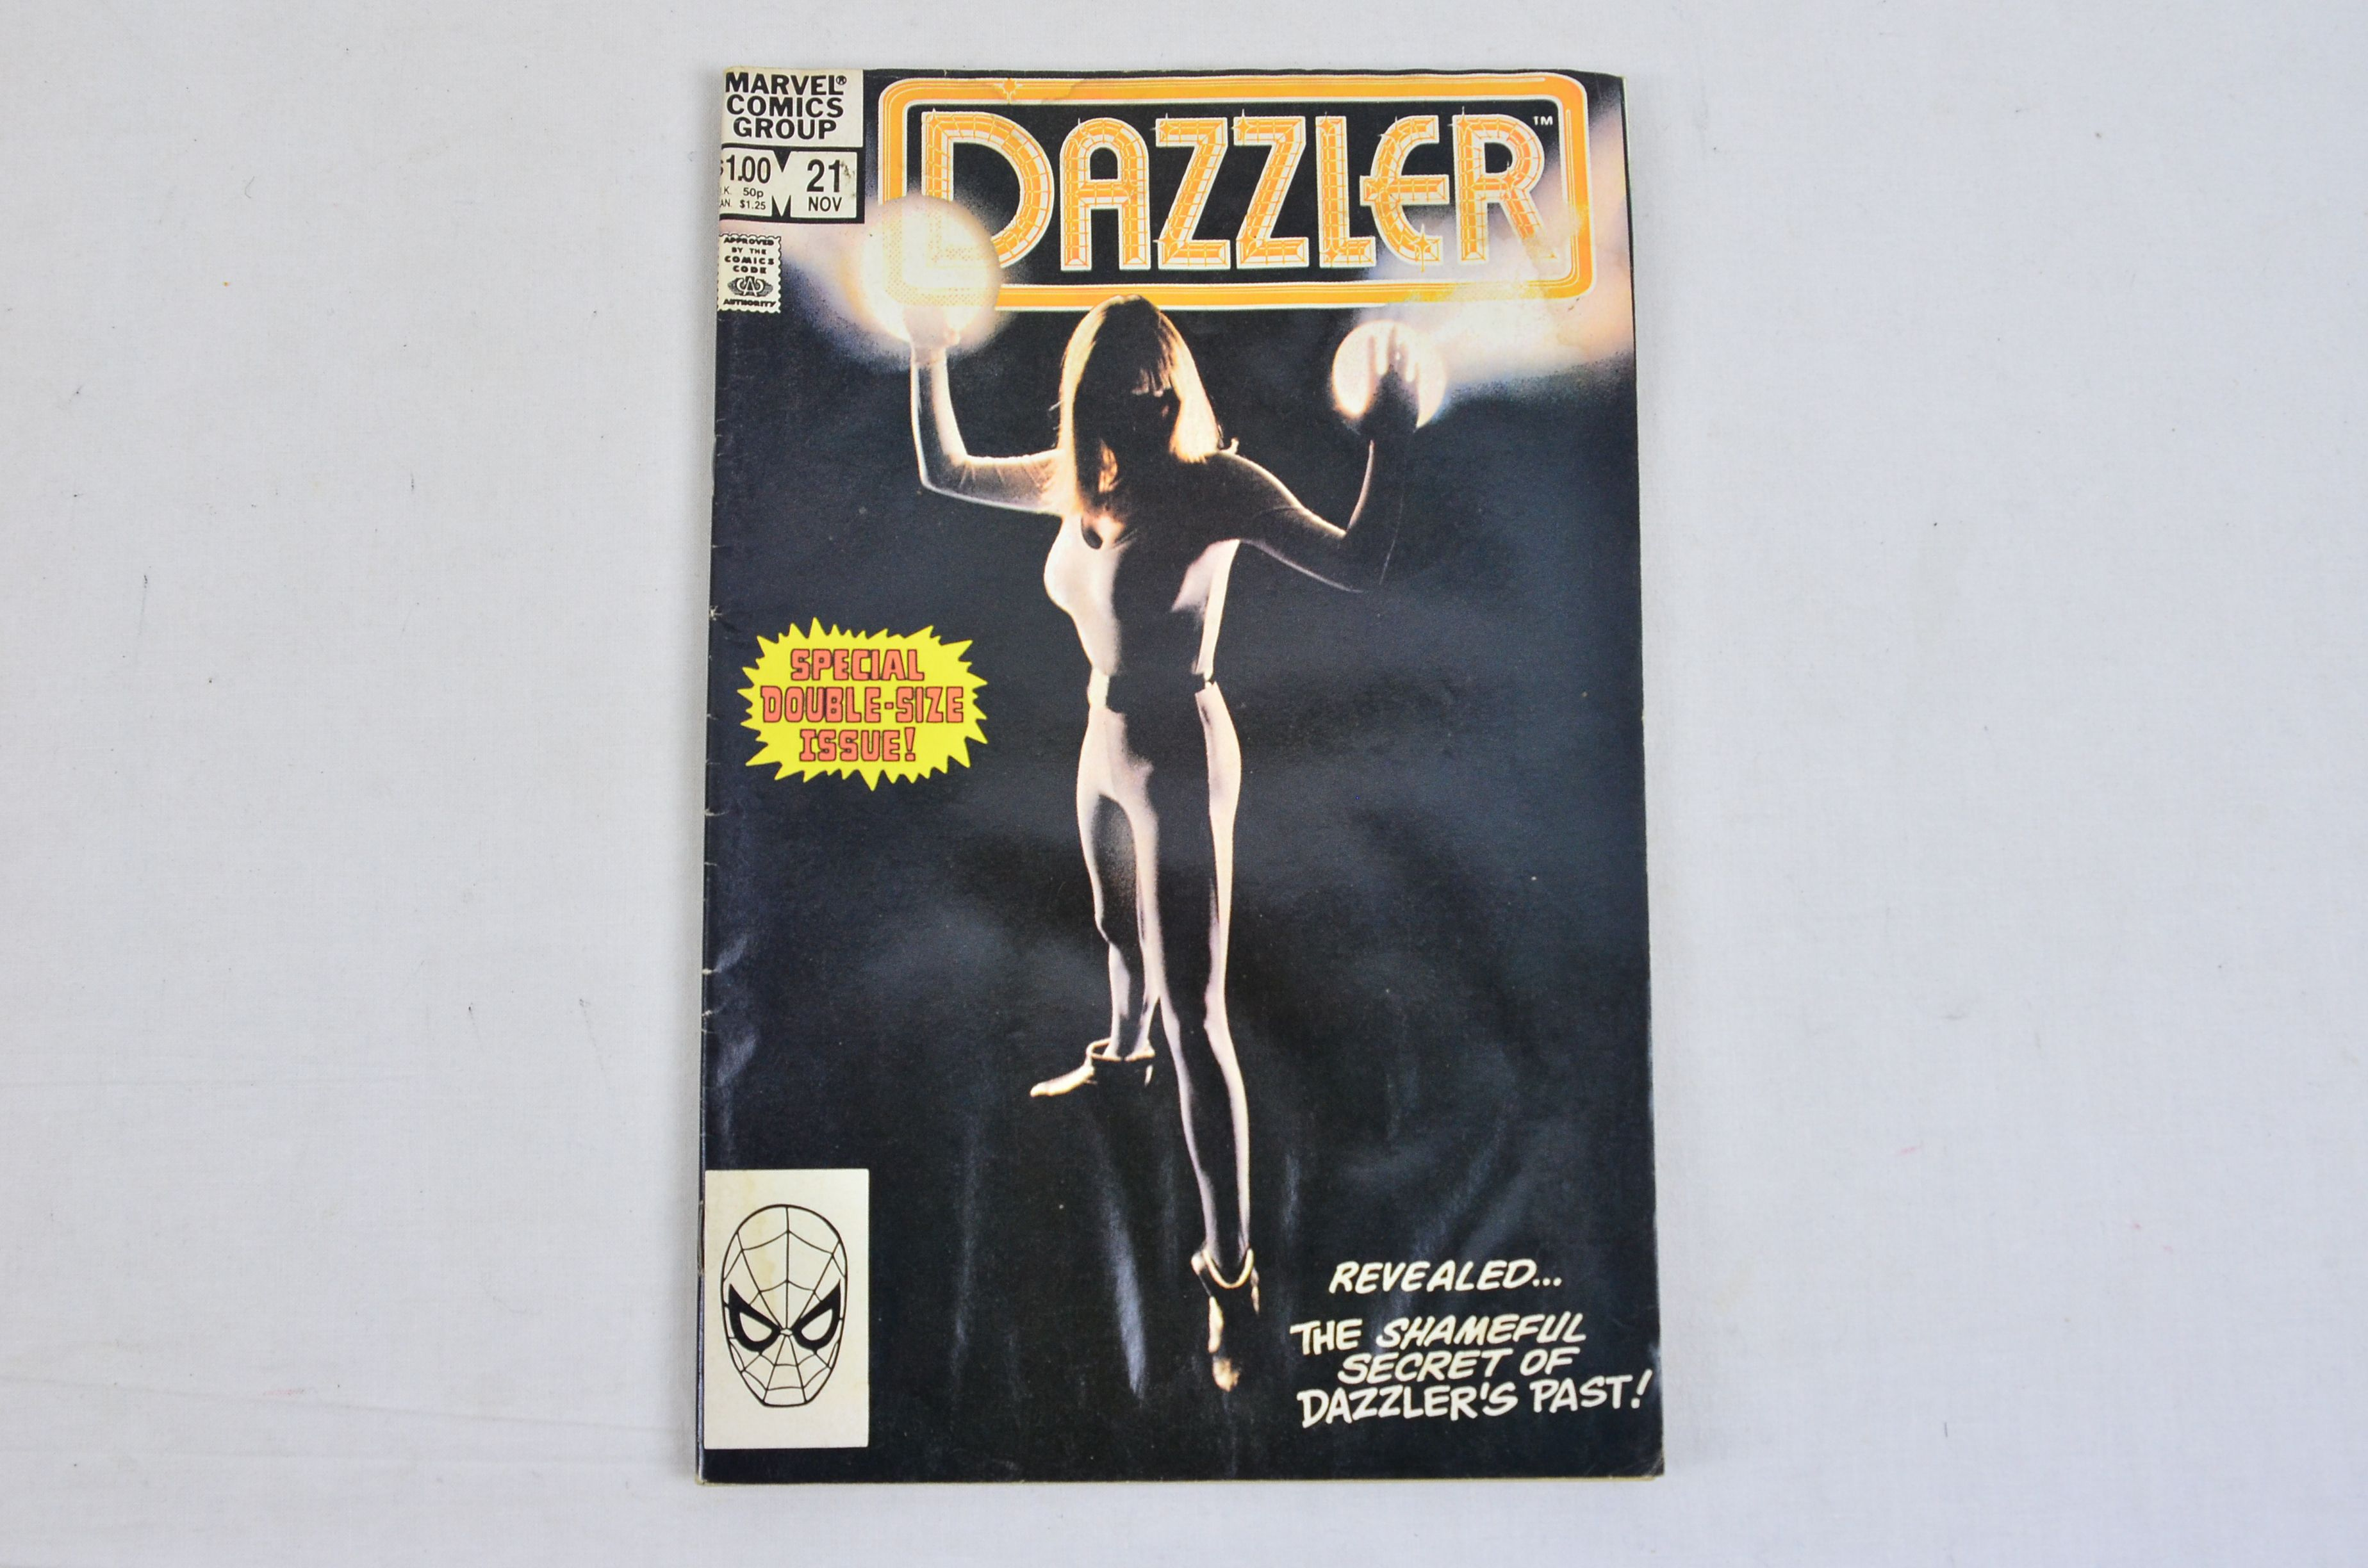 Vintage Marvel Comics Group Dazzler Collectable Comic 3